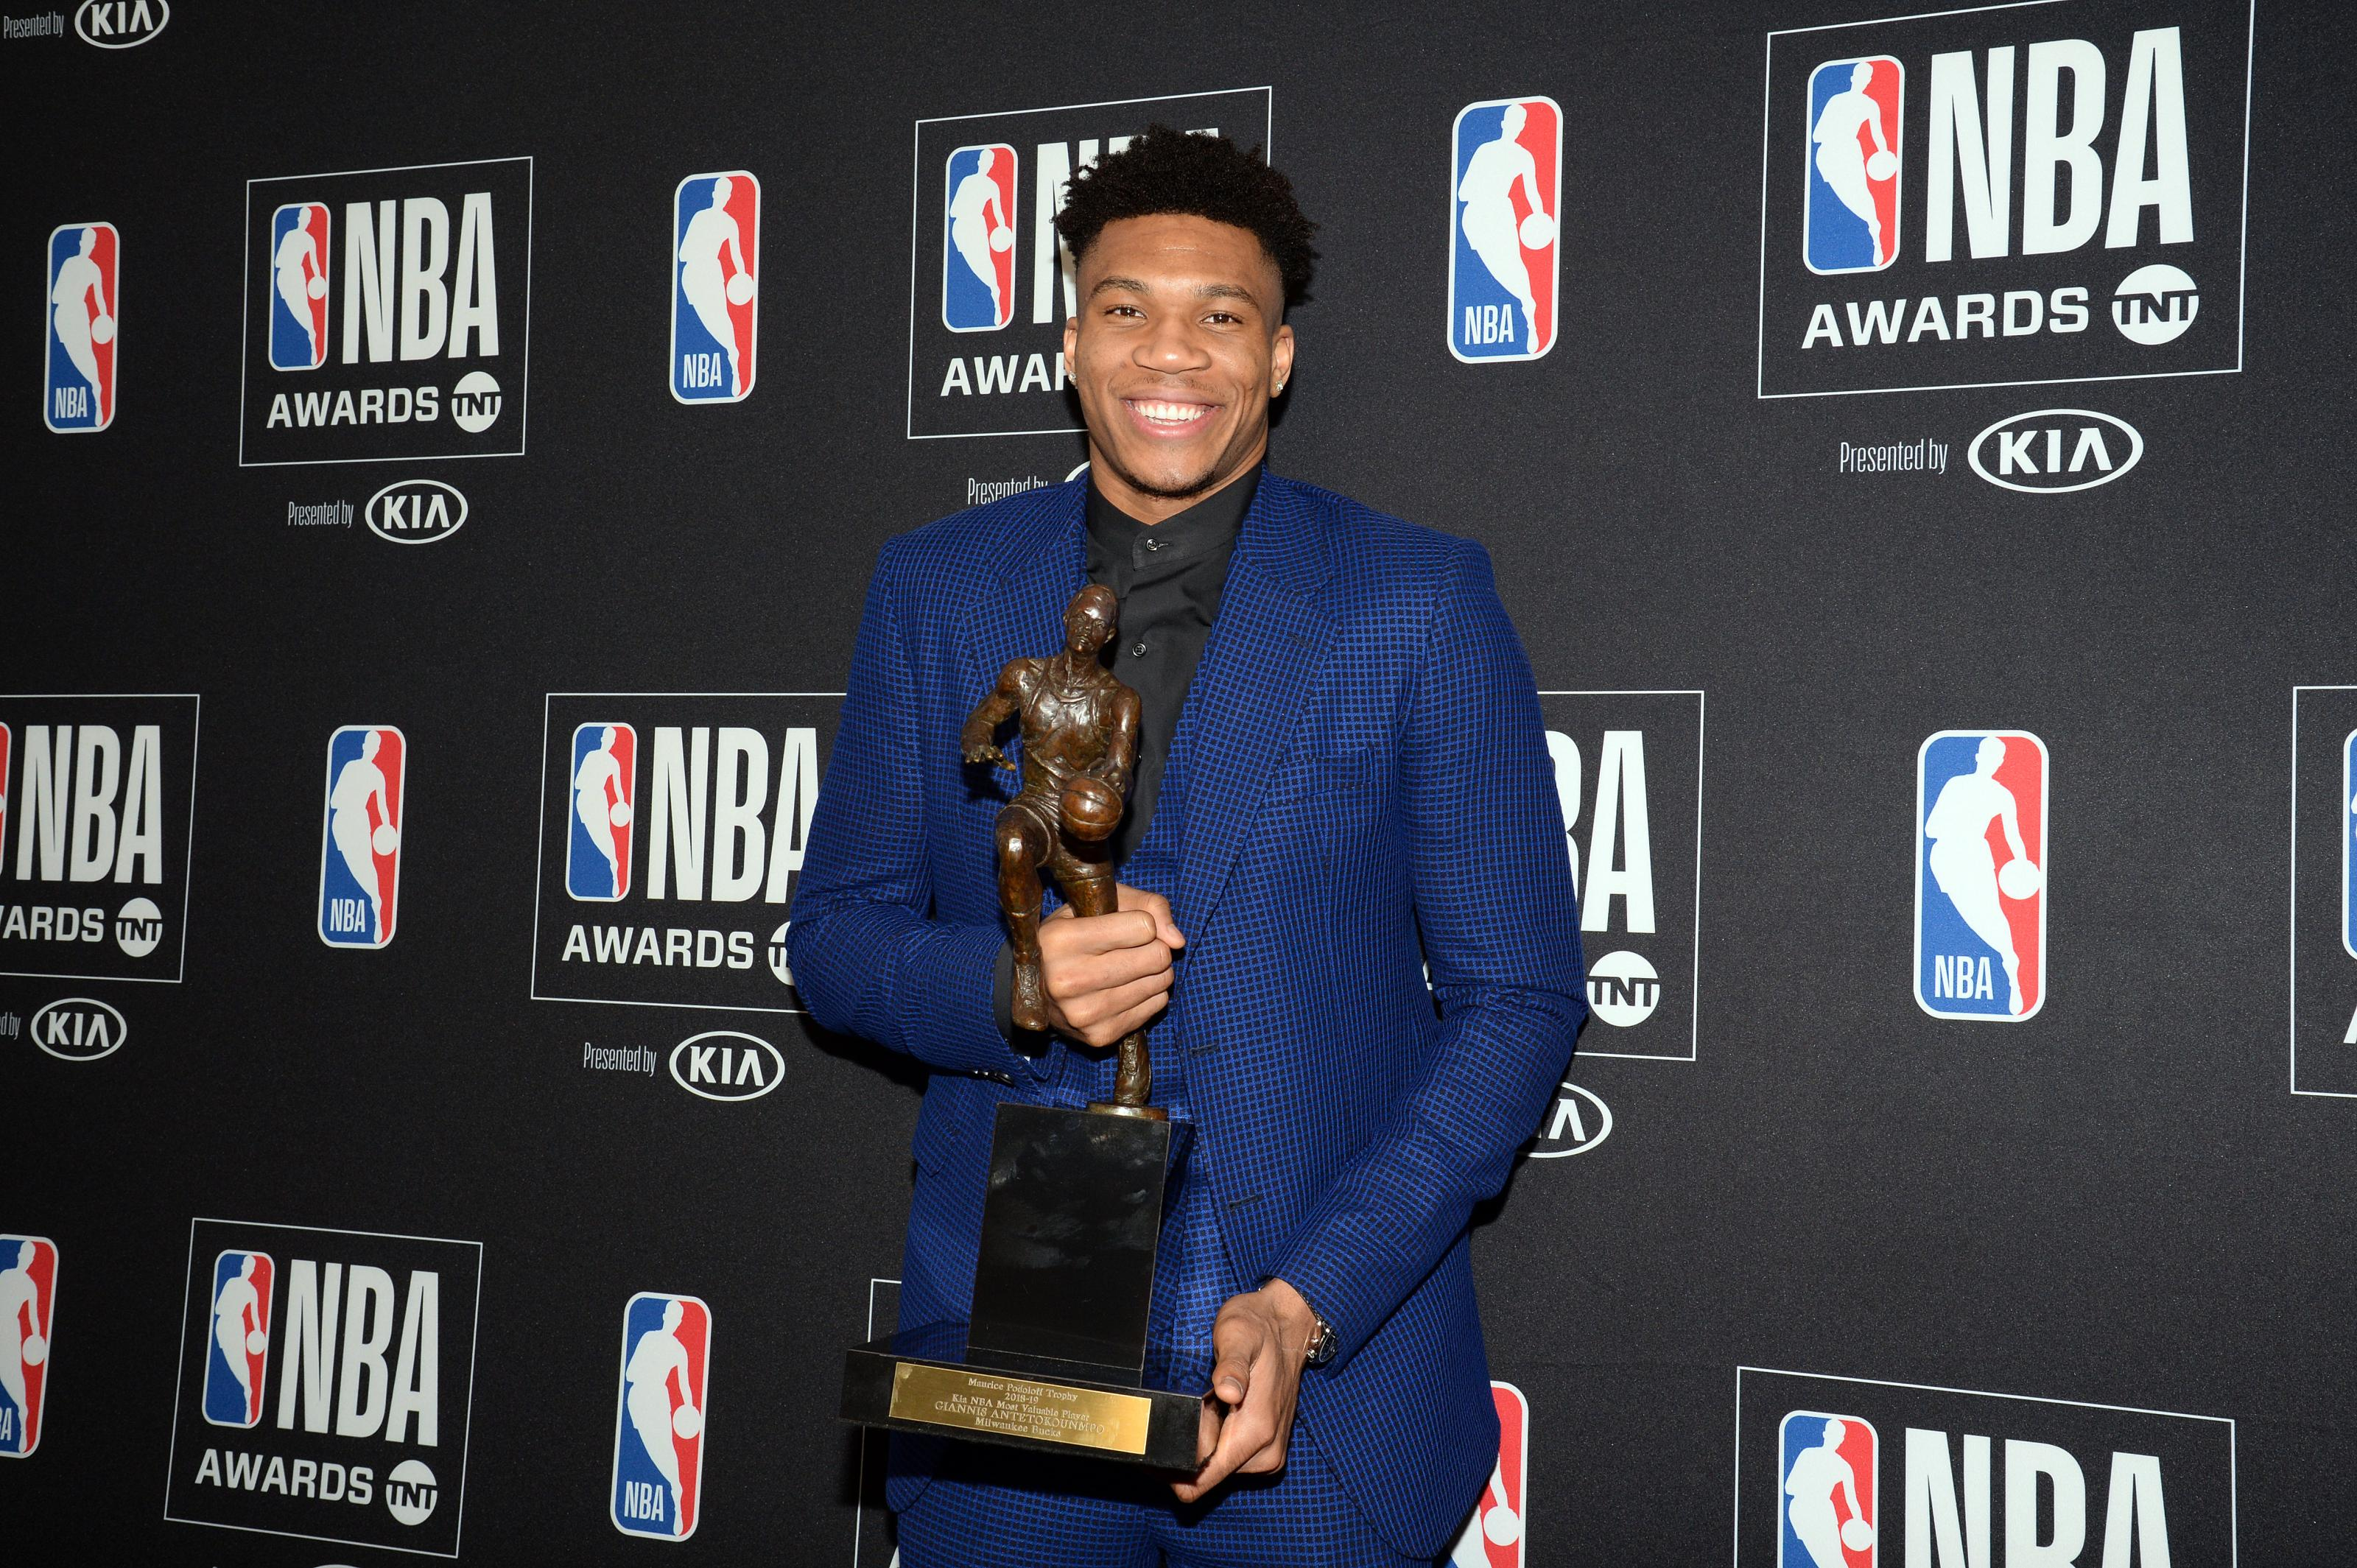 Giannis wins MVP, Pascal Siakam wins Most improved at NBA Awards